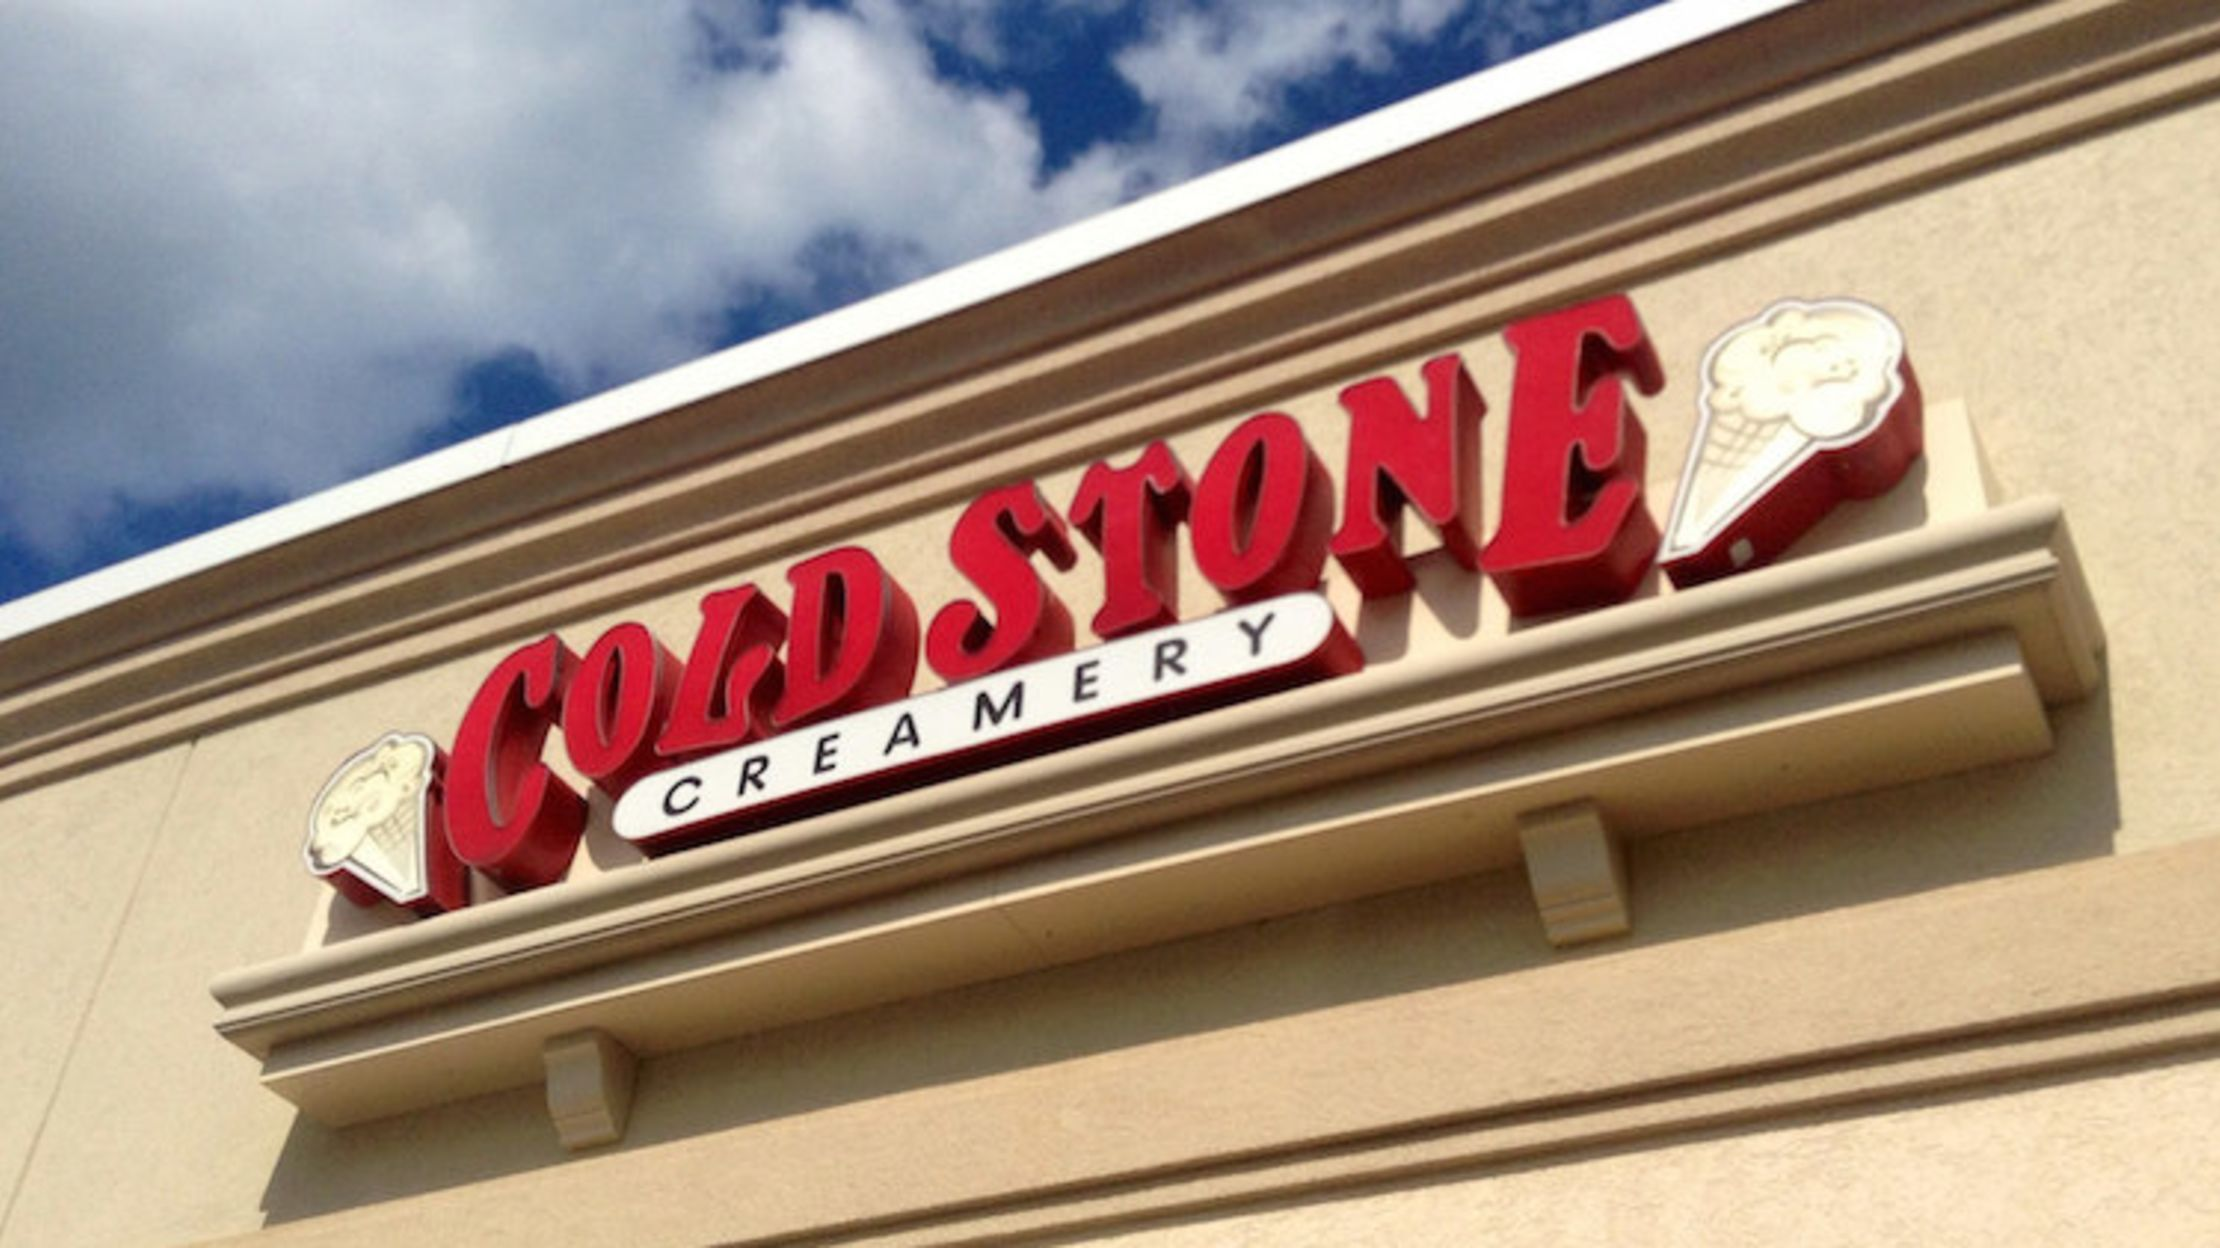 11 Chock Full Facts About Cold Stone Creamery Mental Floss